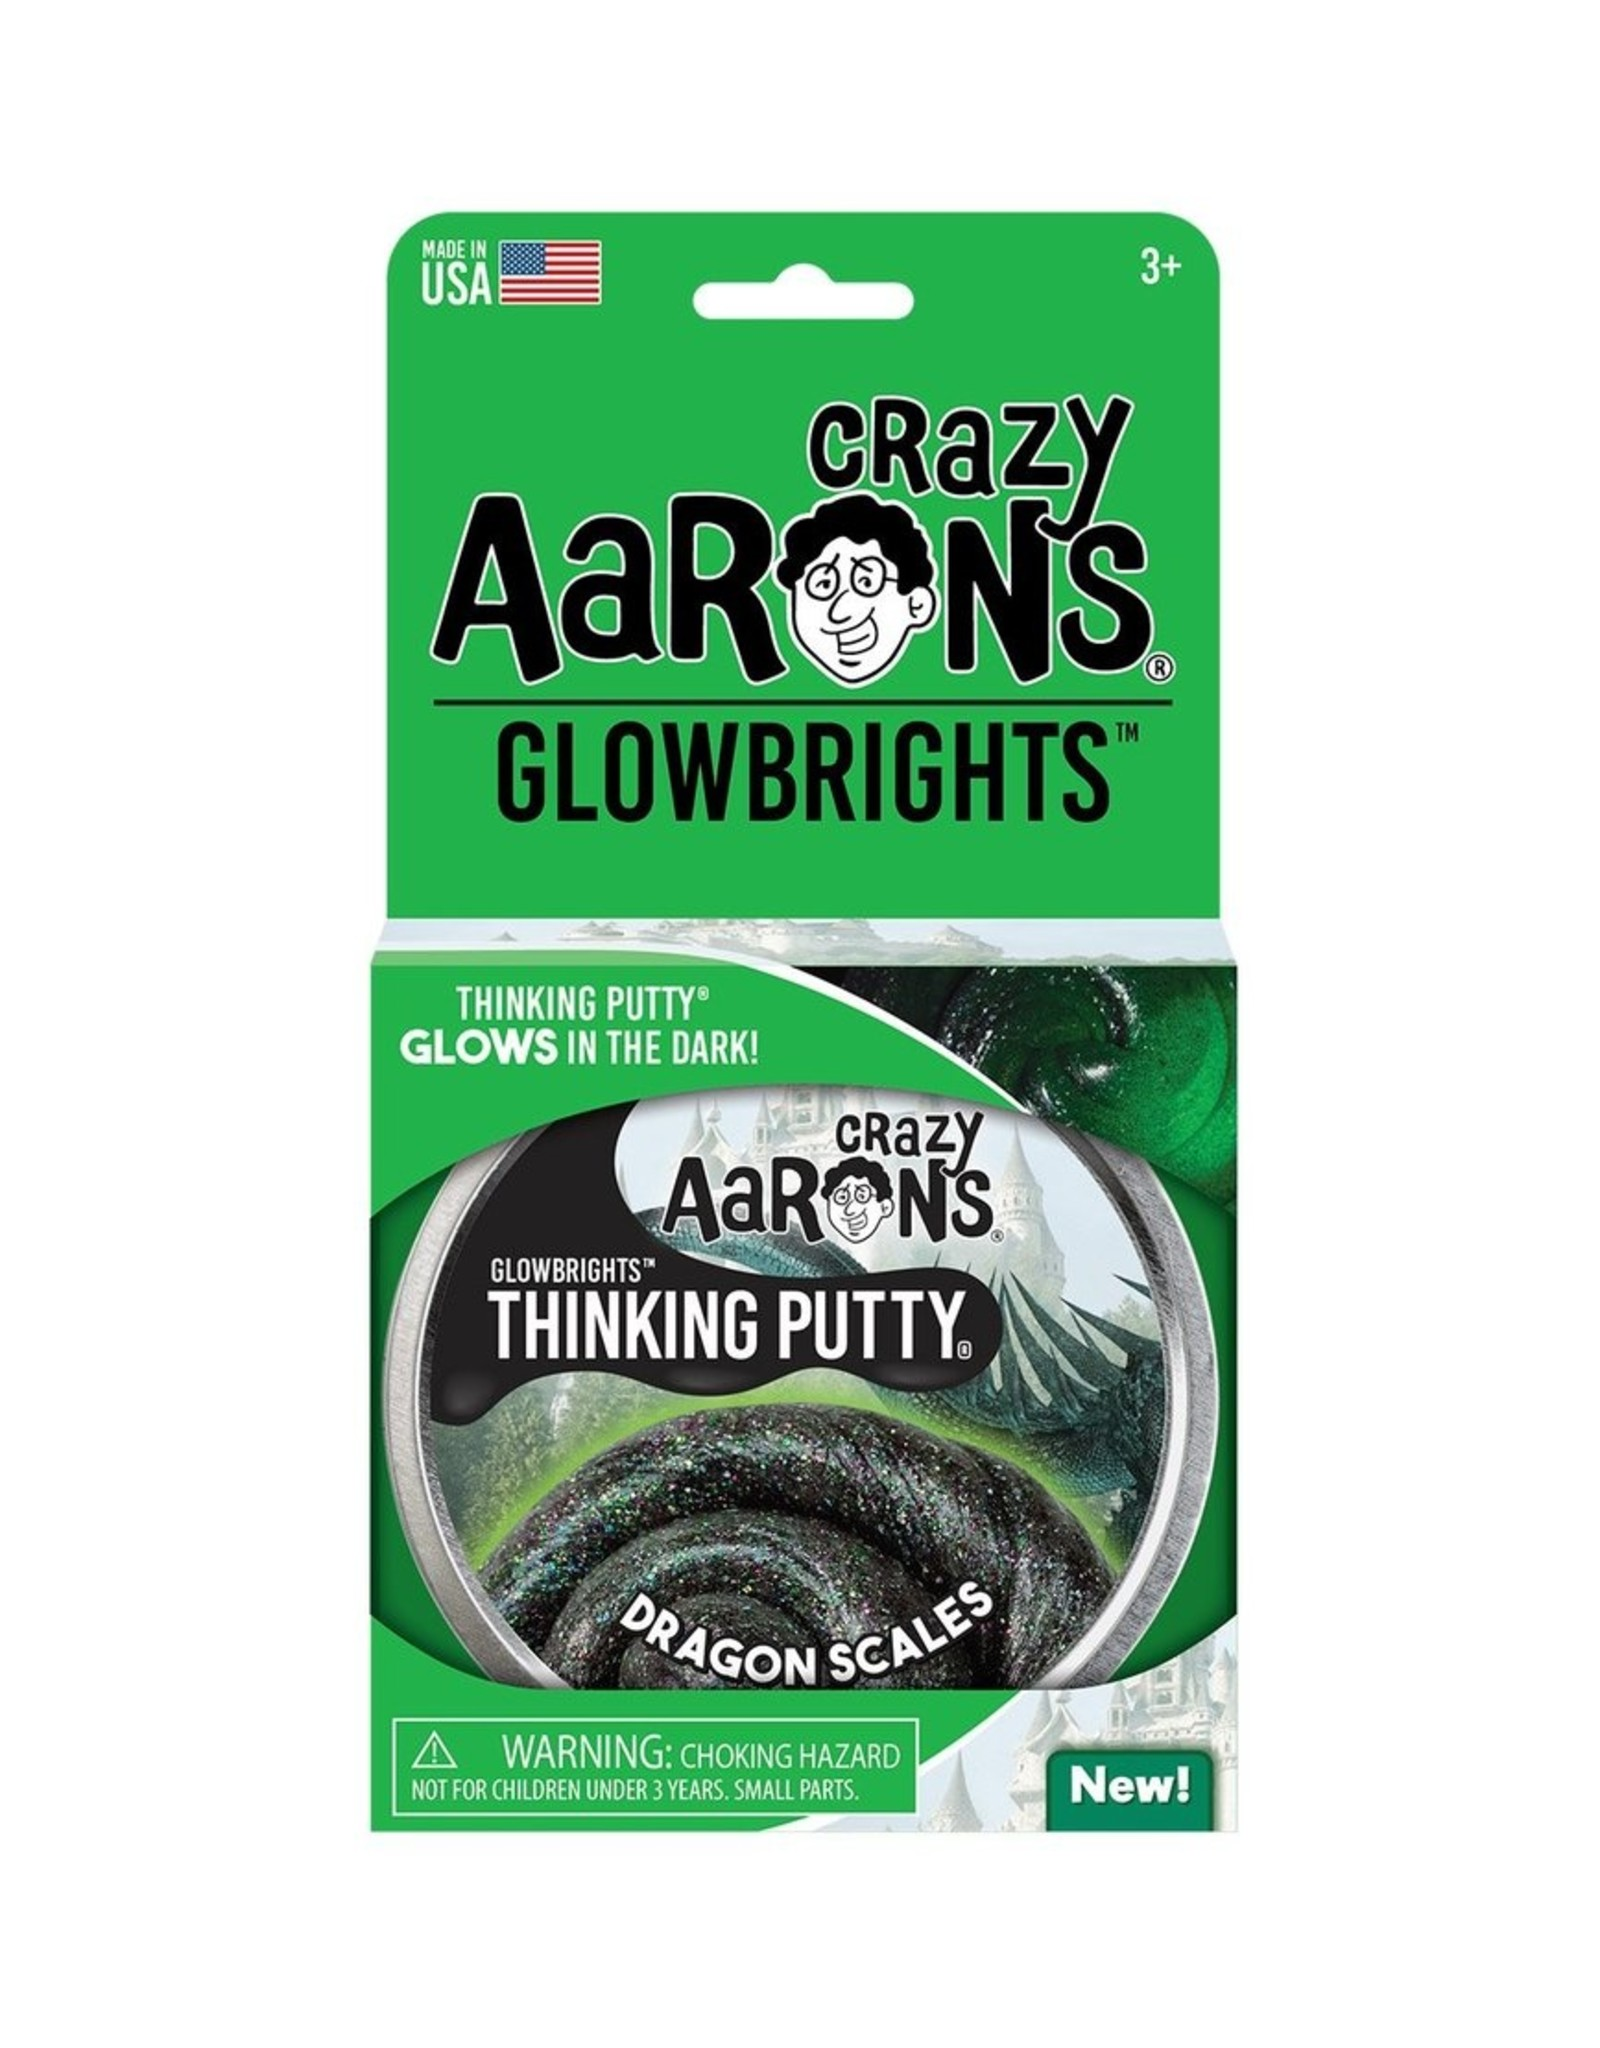 Crazy Aaron's Glowbrights Dragon Scales Thinking Putty